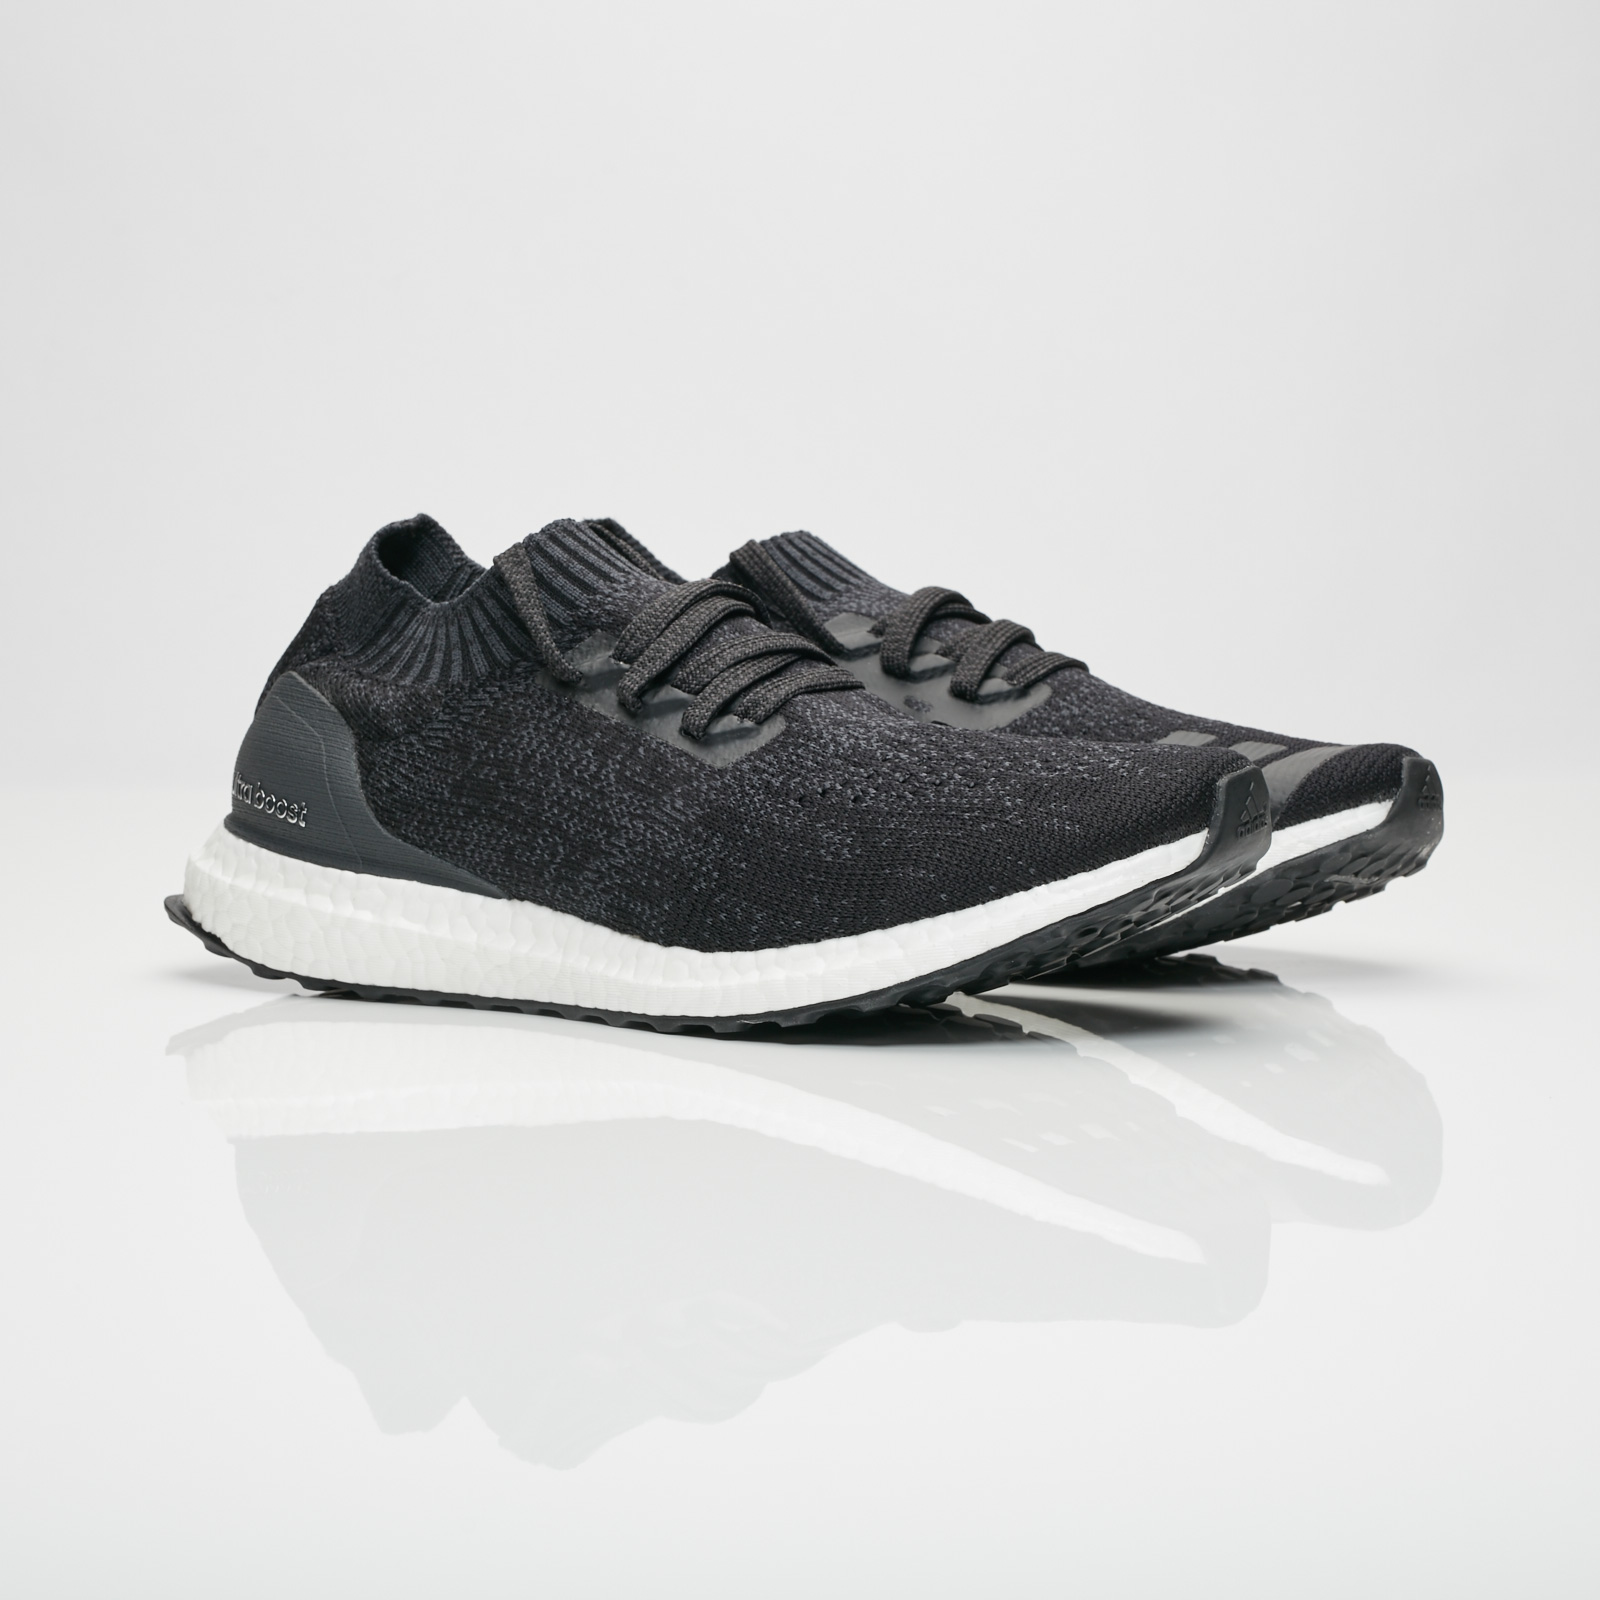 finest selection 728c0 51ca7 adidas Ultraboost Uncaged - Da9164 - Sneakersnstuff | sneakers ...